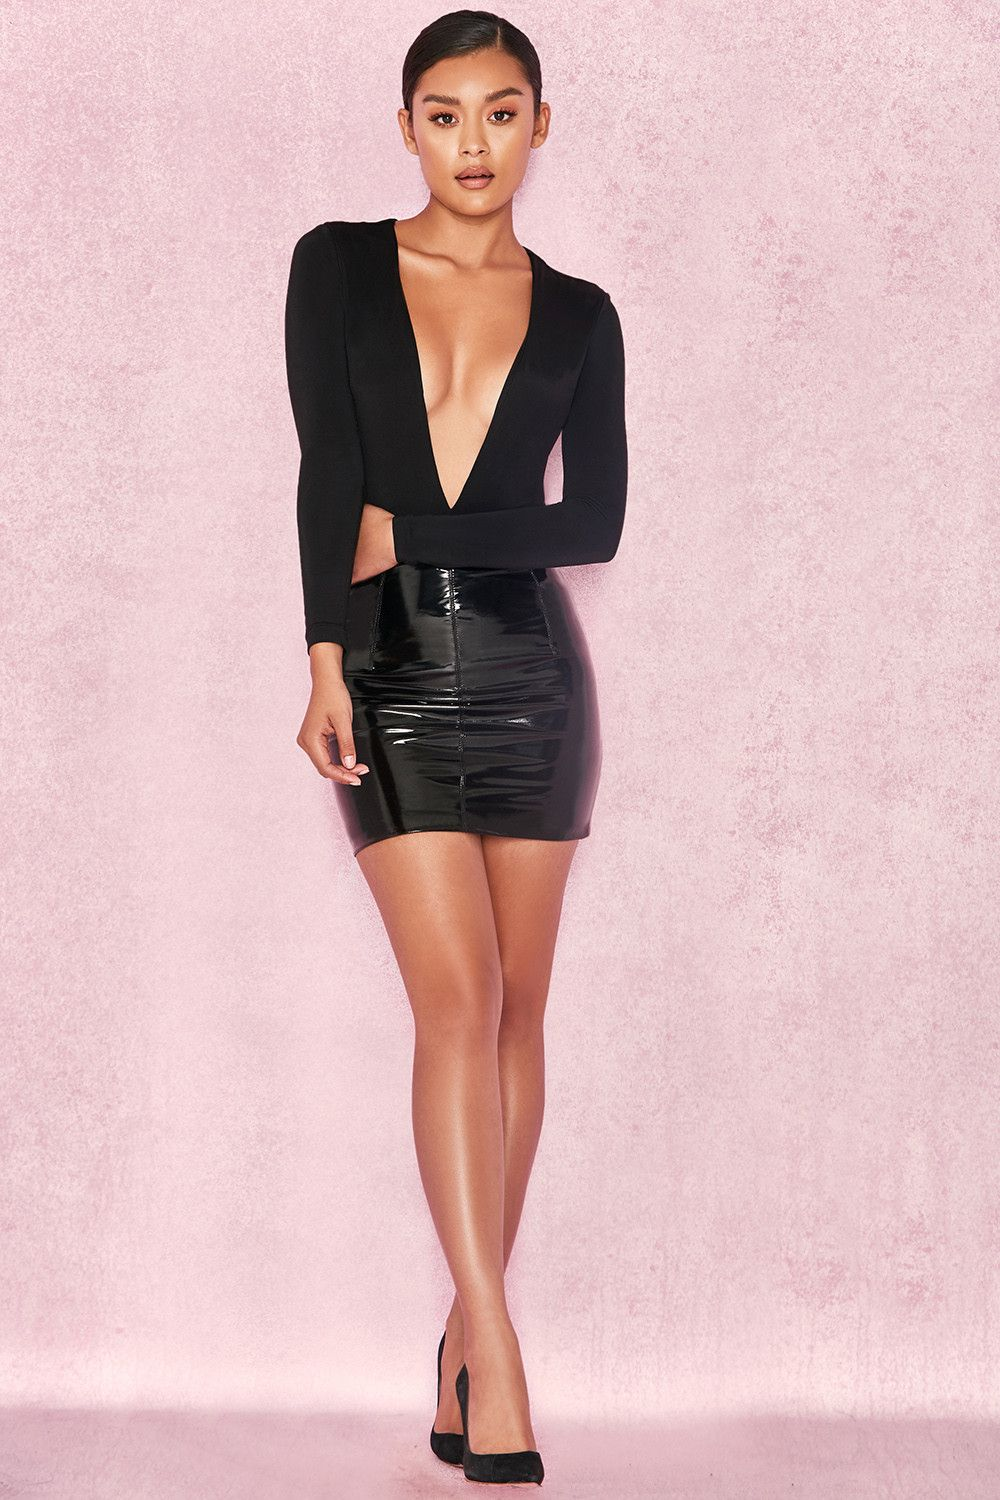 5b62bca6ba Clothing : Skirts : 'Solera' Black Vinyl Mini Skirt | mini skirt ...